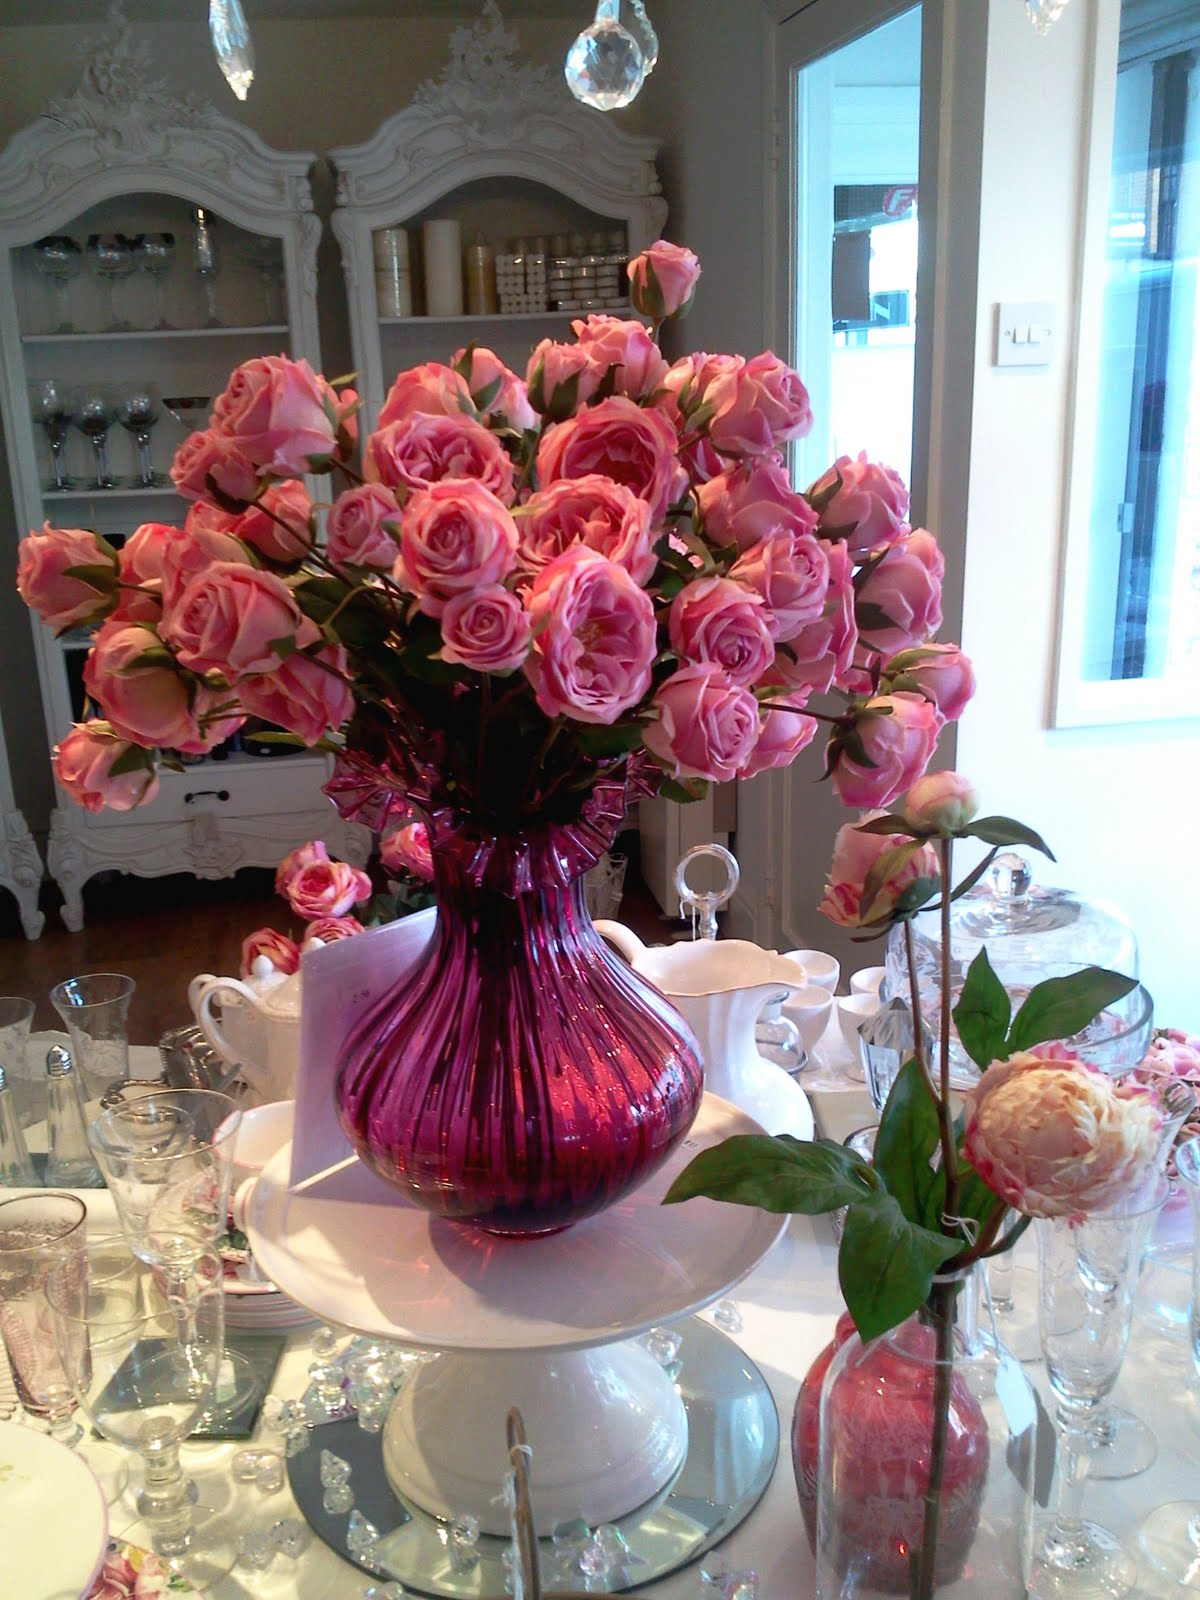 Strawberry house interiors gorgeous silk flowers now in stock and not only do they last a lot longer than fresh flowers they look just as beautiful and are a great alternative for hay fever sufferers mightylinksfo